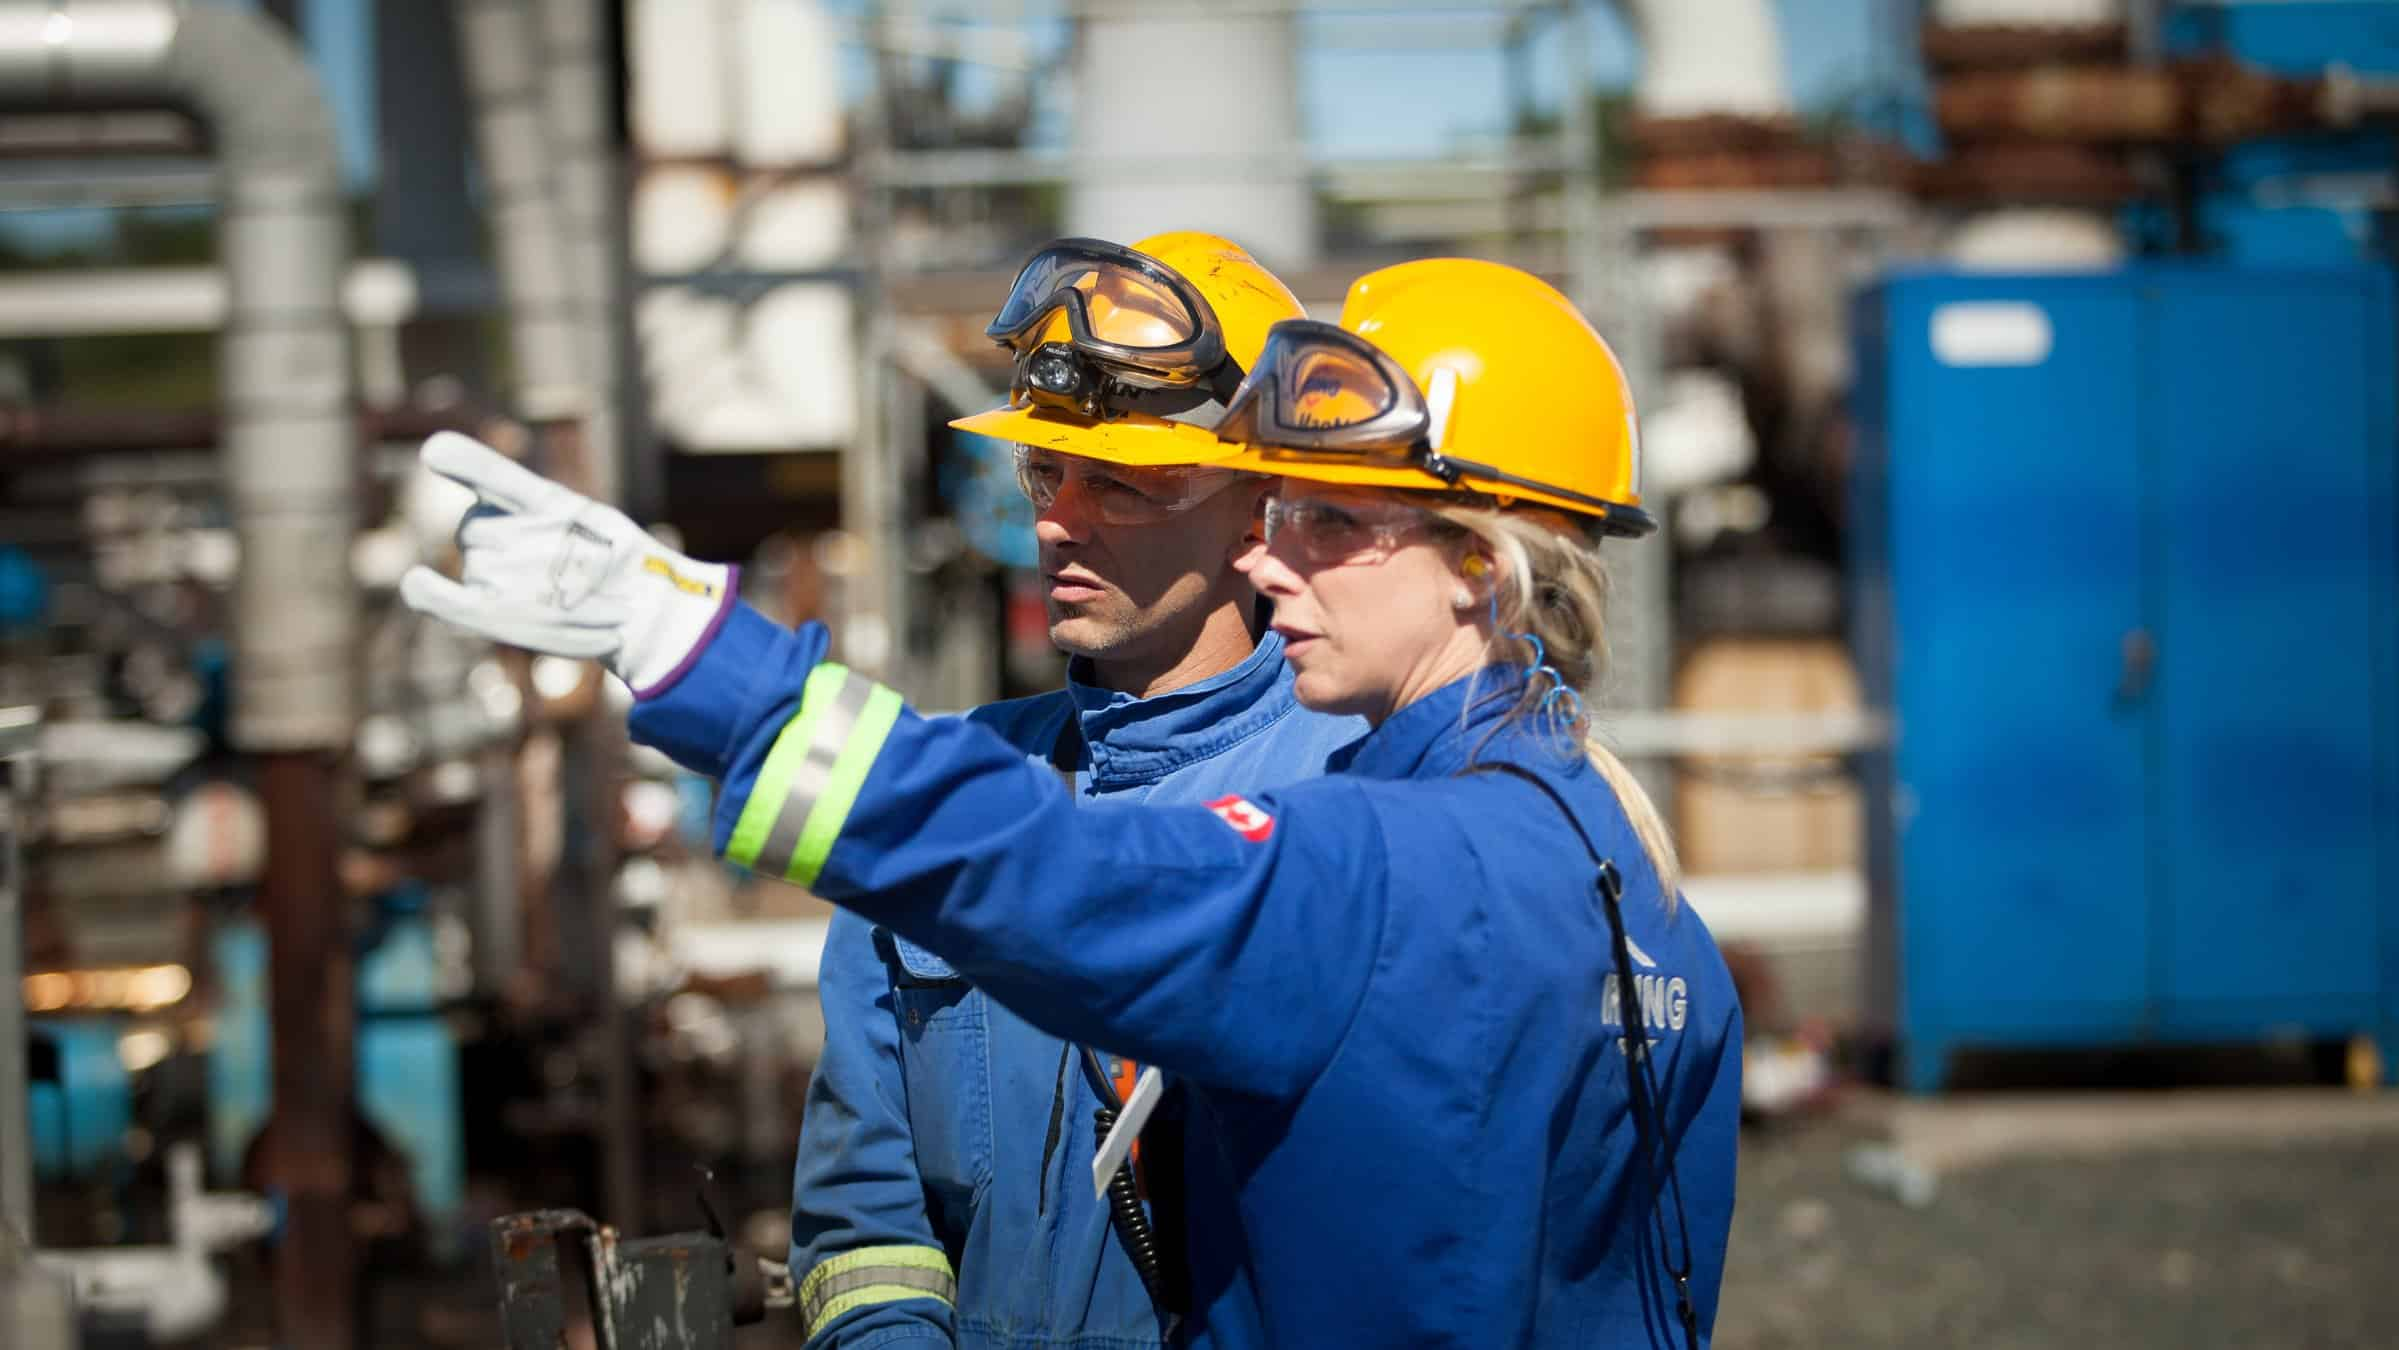 Accountants, Bakers, Labourers, & More People Are Required @ Irving Oil – Apply Now!